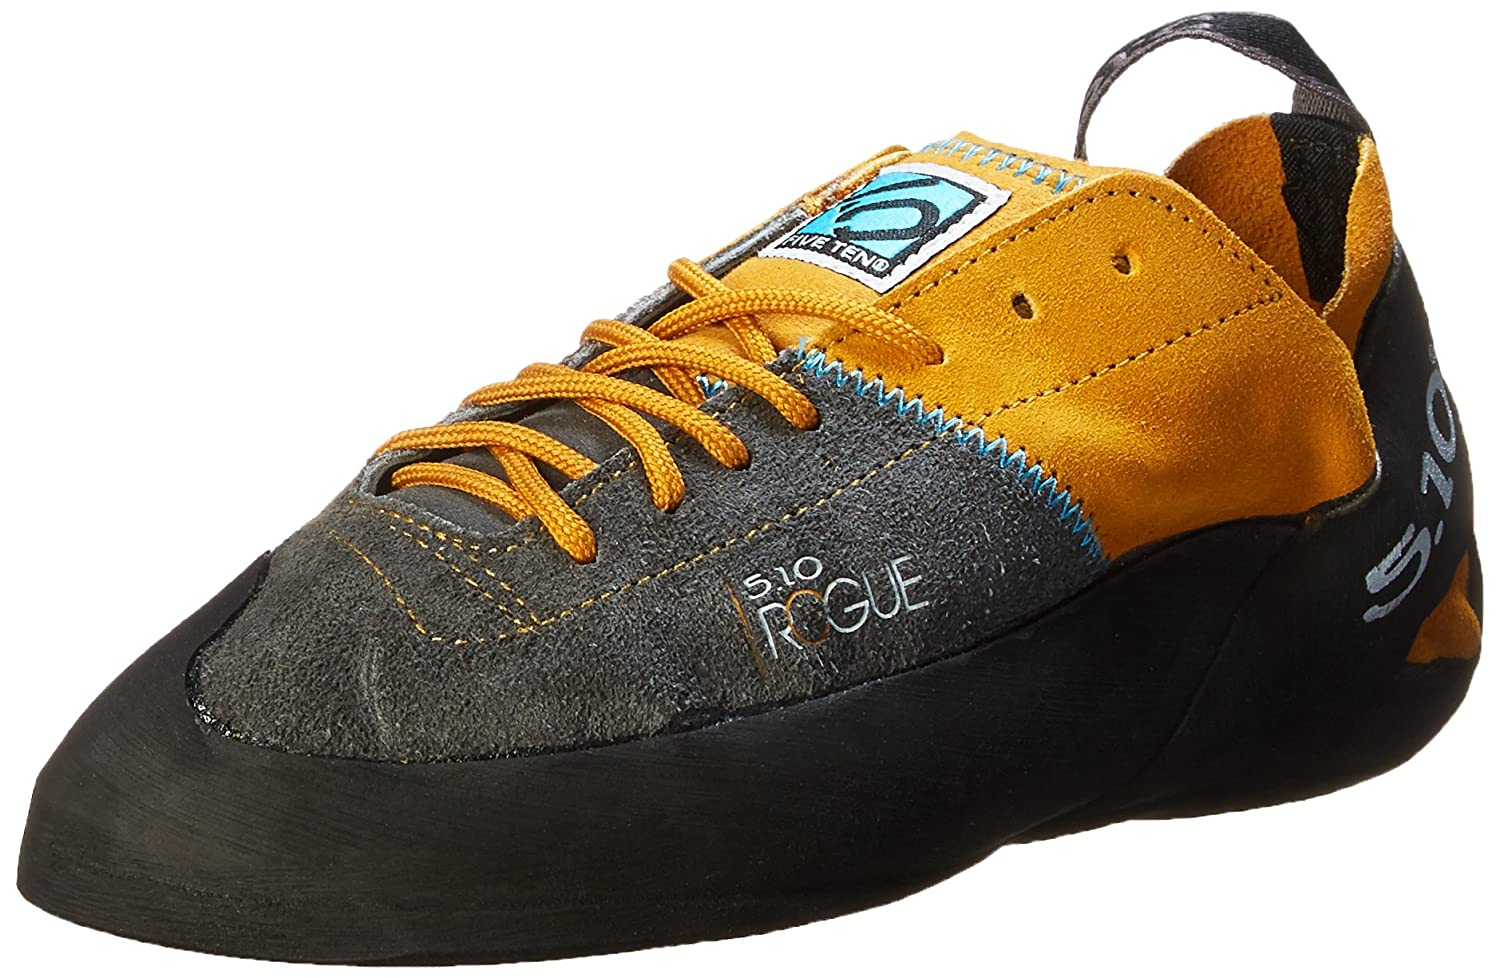 Five Ten Women's Rogue Lace-Up Climbing Shoe B00IDNURAY 8 B(M) US|Zinnia/Charcoal